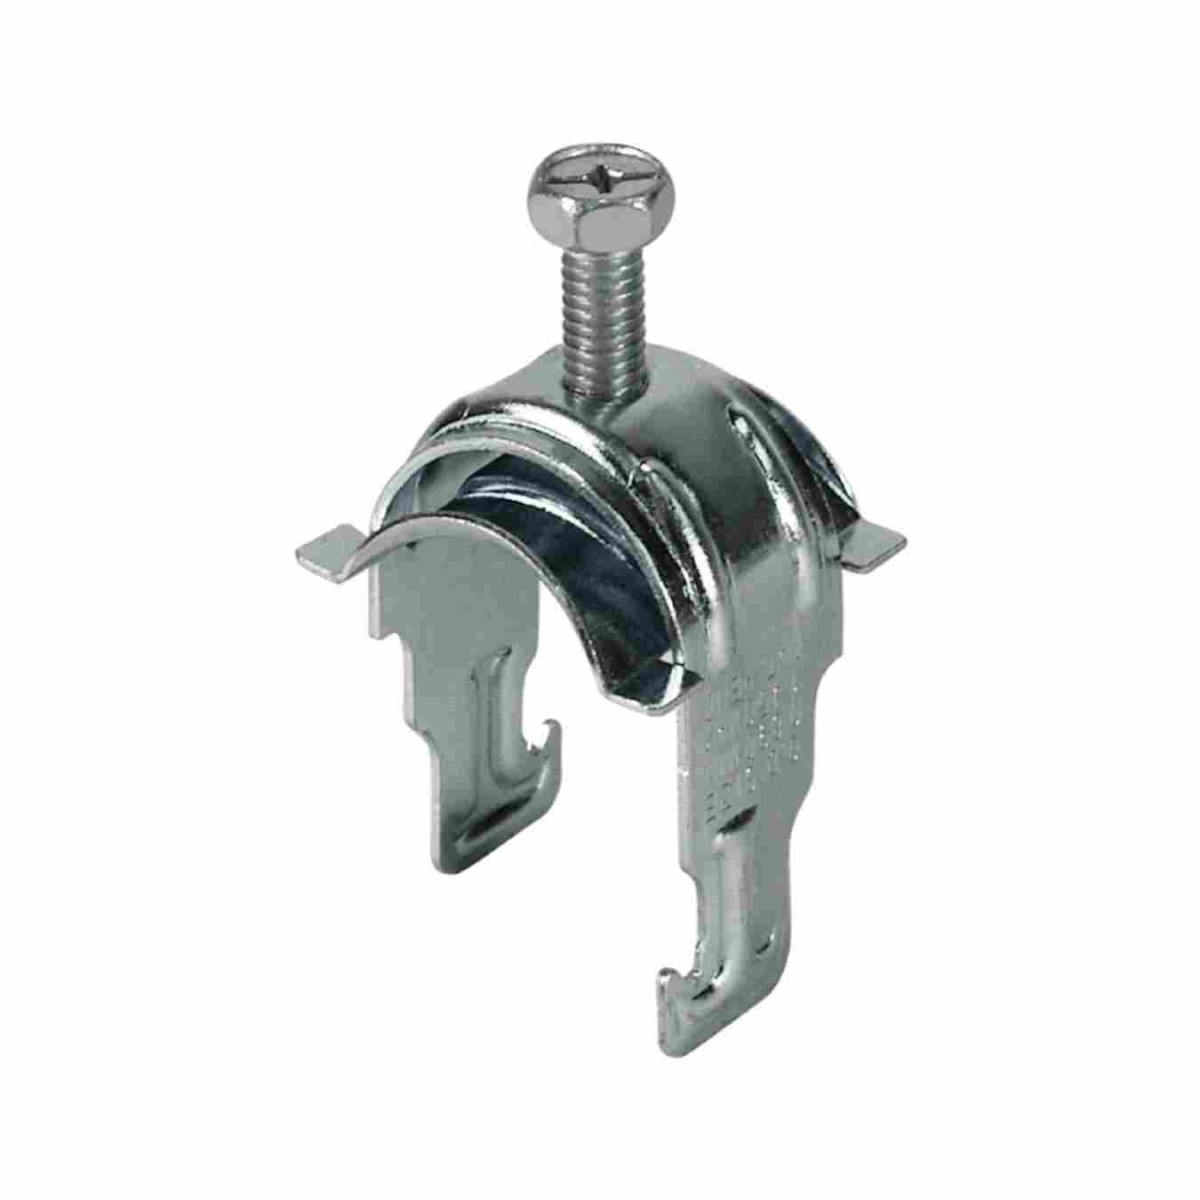 STRUT CLAMP SADDLE TYPE - Conduit Supports, Straps, Clamps & Hangers